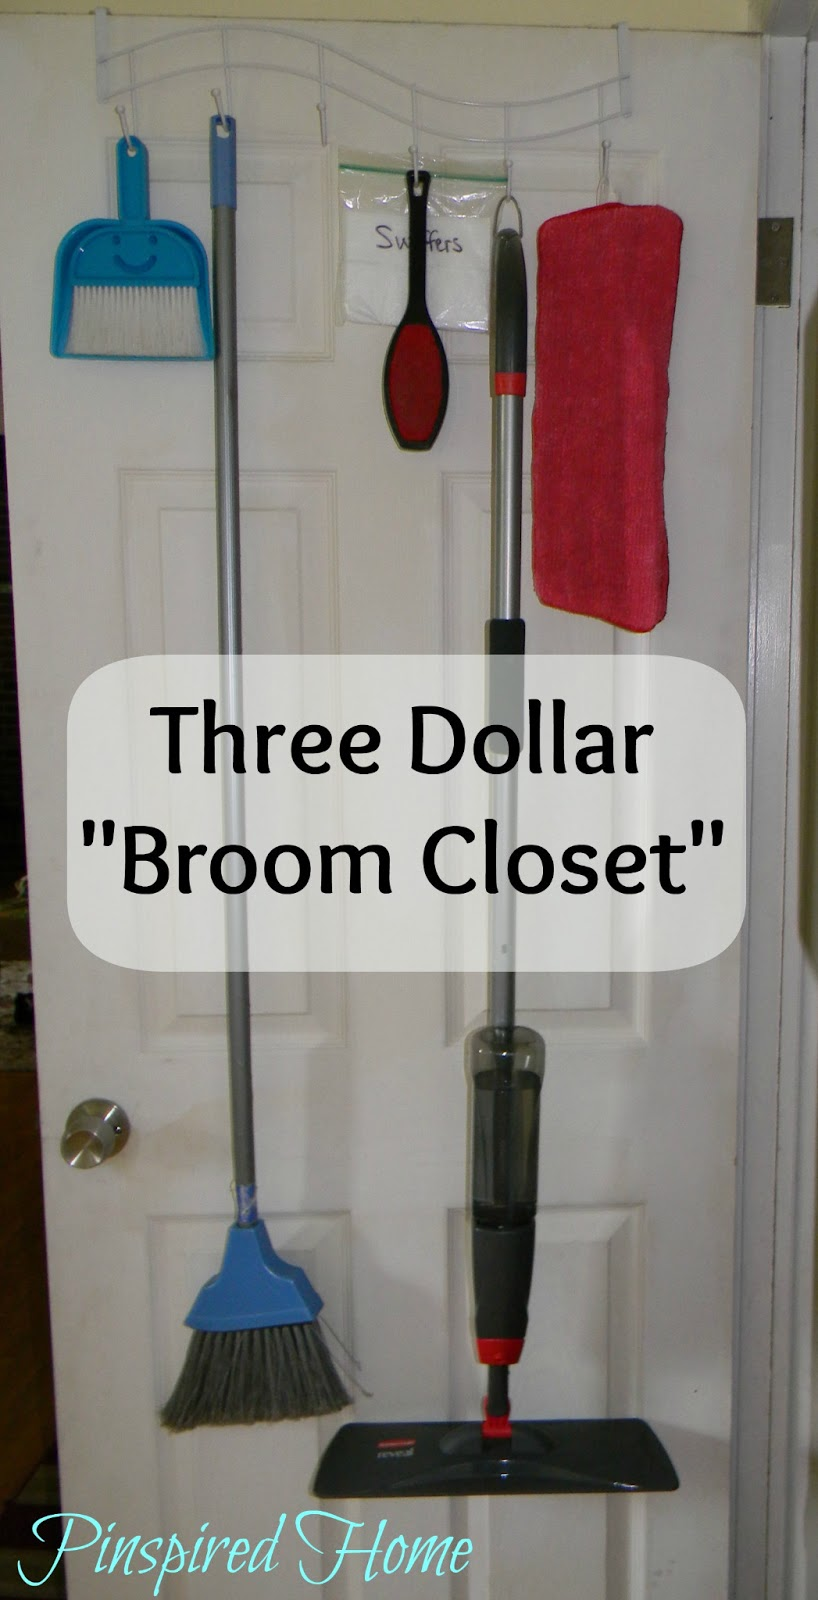 Pinspired Home Improvised Broom Closet